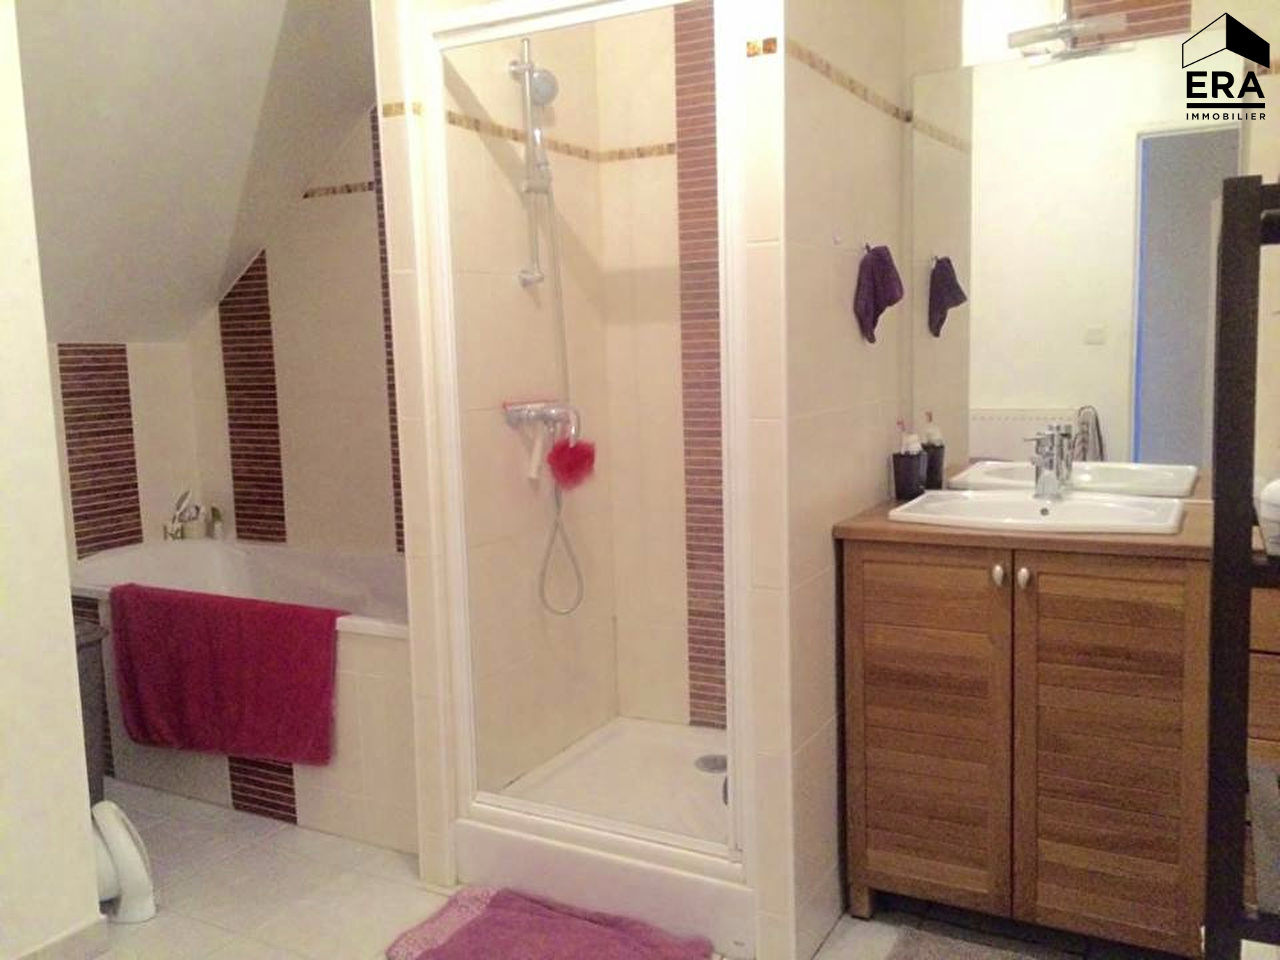 Residence securisee chaumont 52000 for Immobilier chaumont 52000